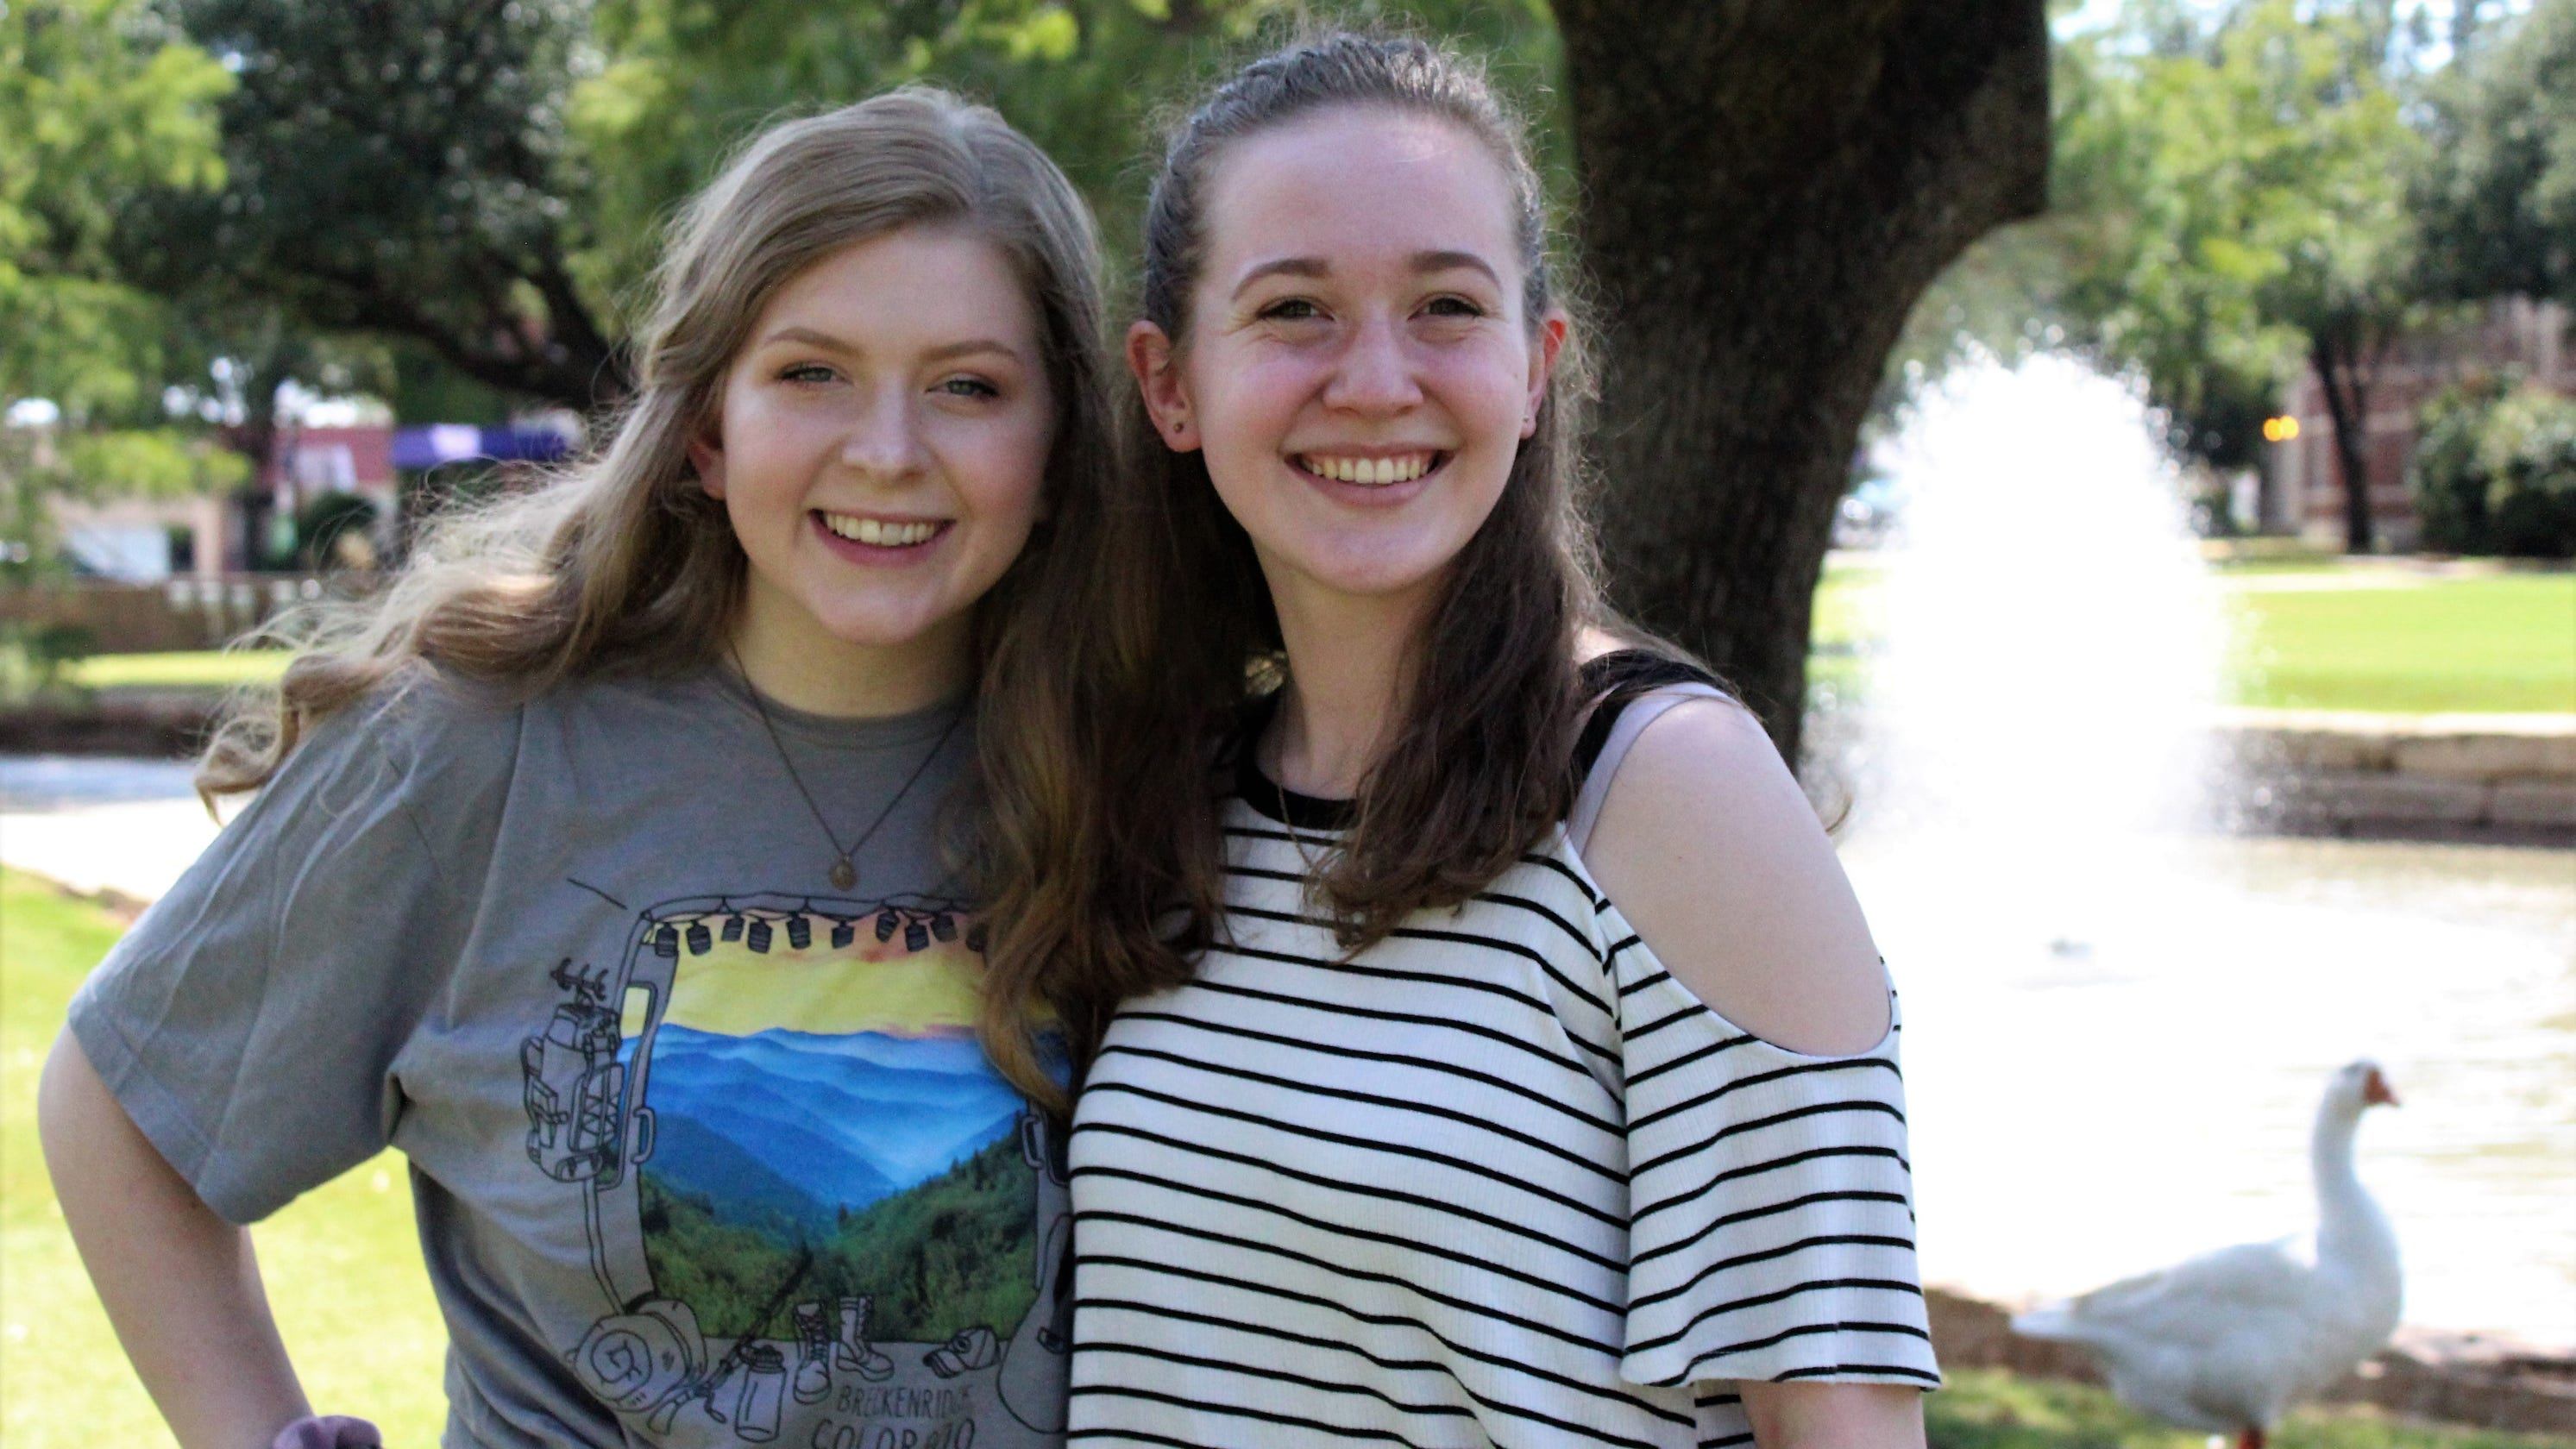 Hardin-Simmons' pond show returns student singers to performance after long break